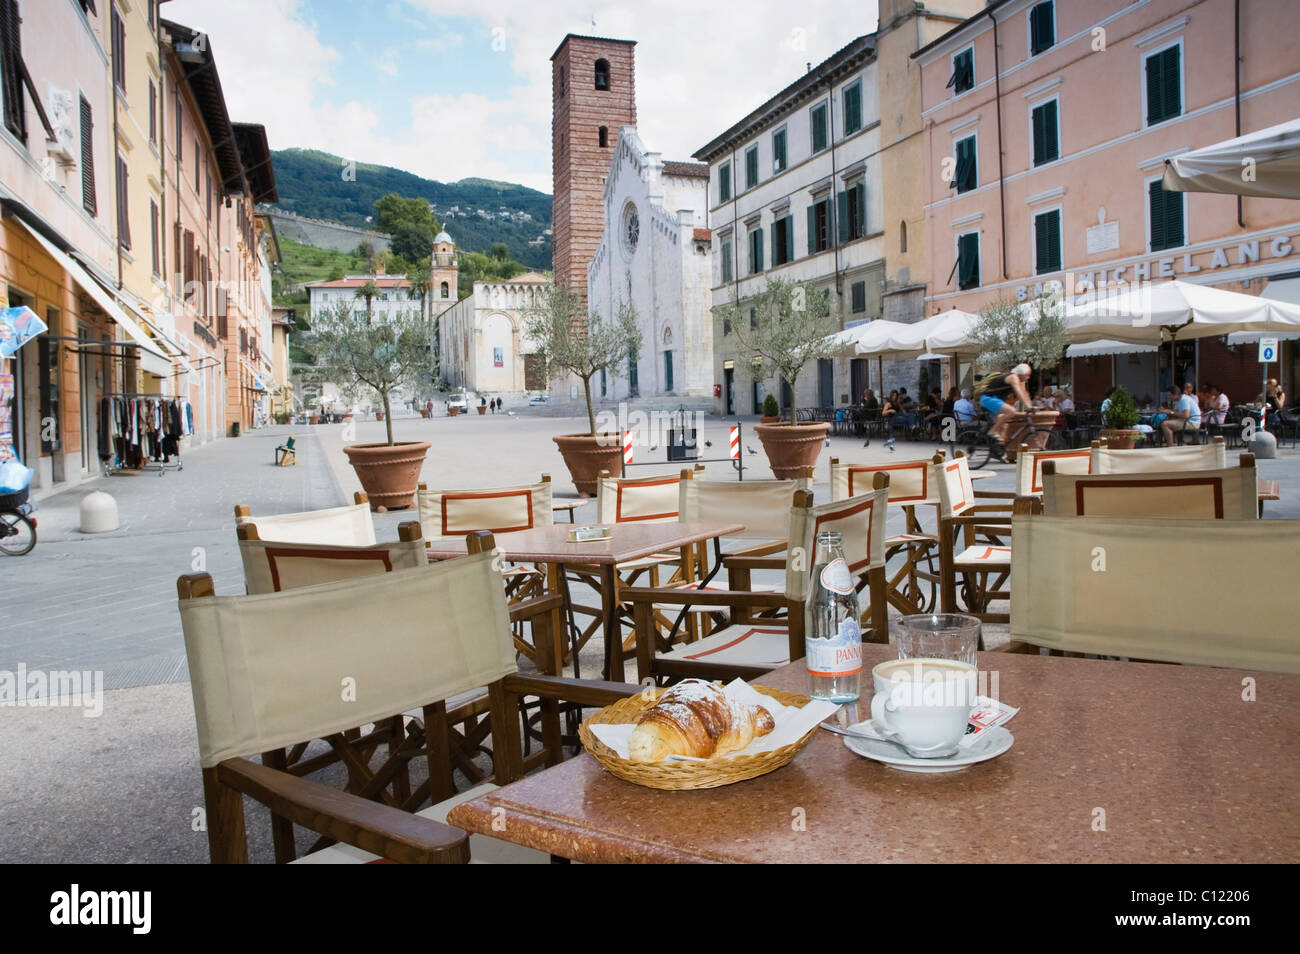 Cappuccino and croissant in the restaurant Gatto Nero, Piazza Carducci, Pietrasanta, Tuscany, Italy, Europe Stock Photo